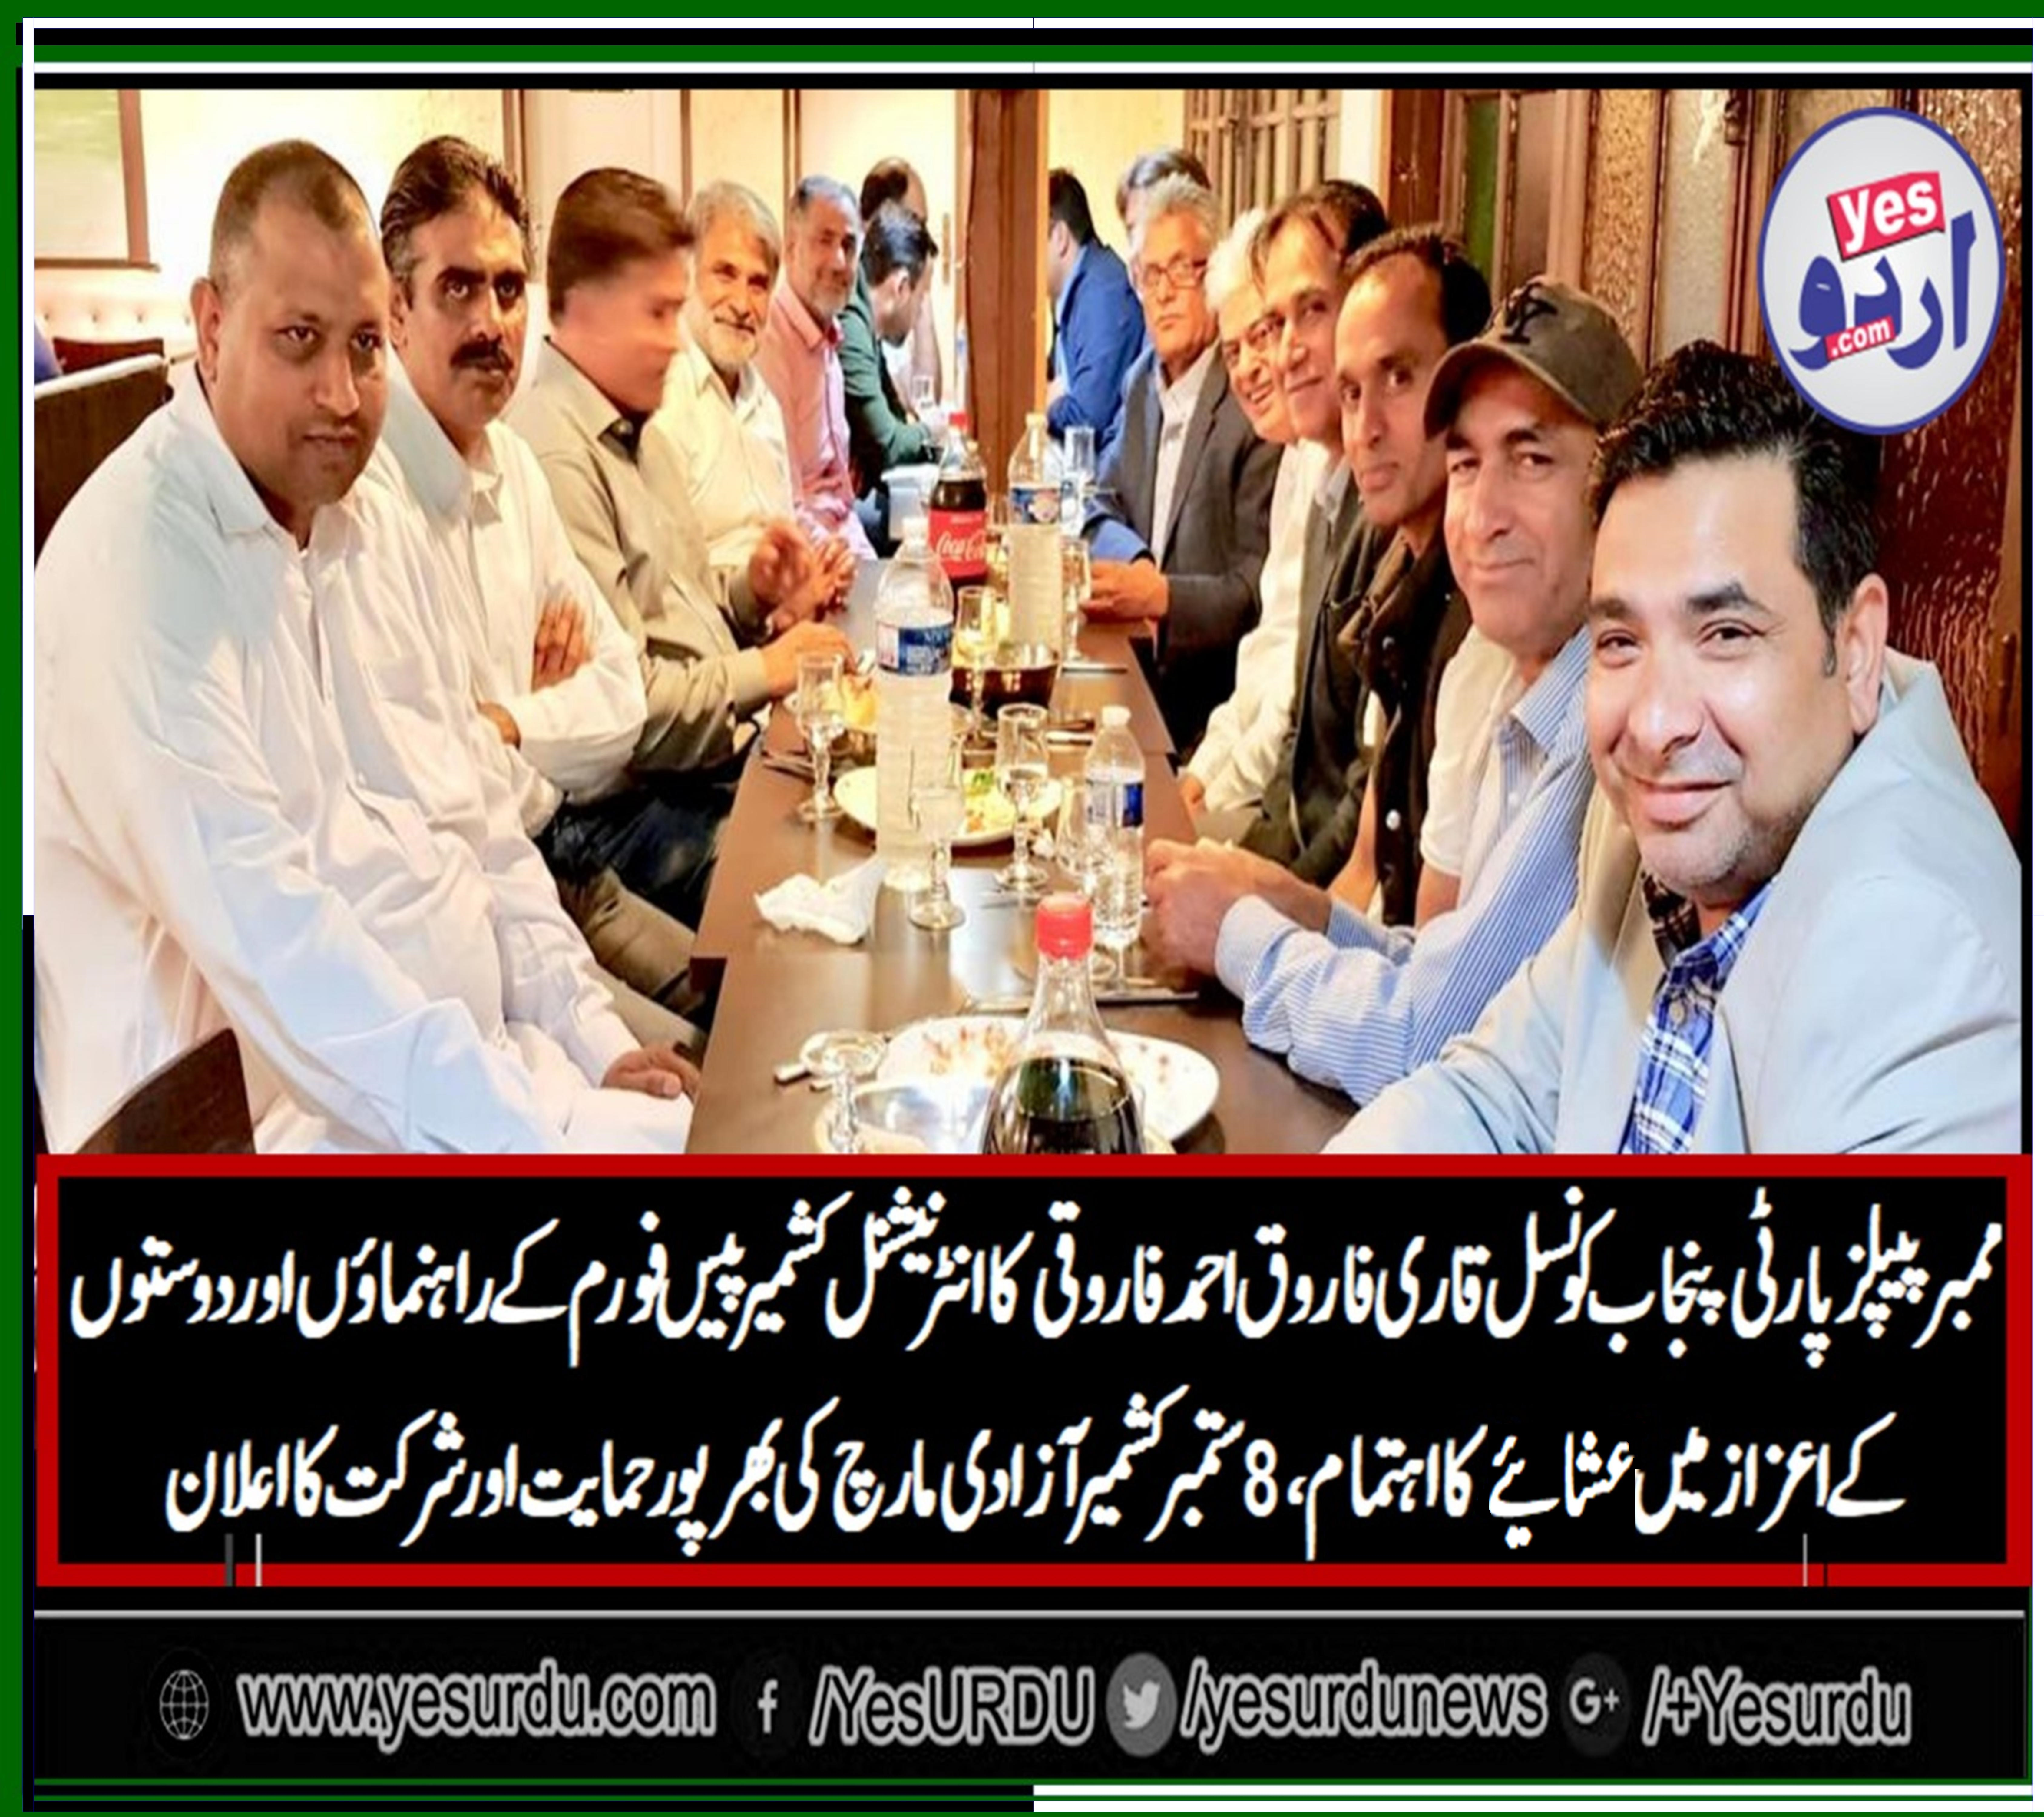 qari farooq ahmed farooqi, arranged, a, grand, dinner, in, favor, of, International, Kashmir, Peace, forum, representatives, and, friends, in, view, of, 8th, September, rally, in, Paris,